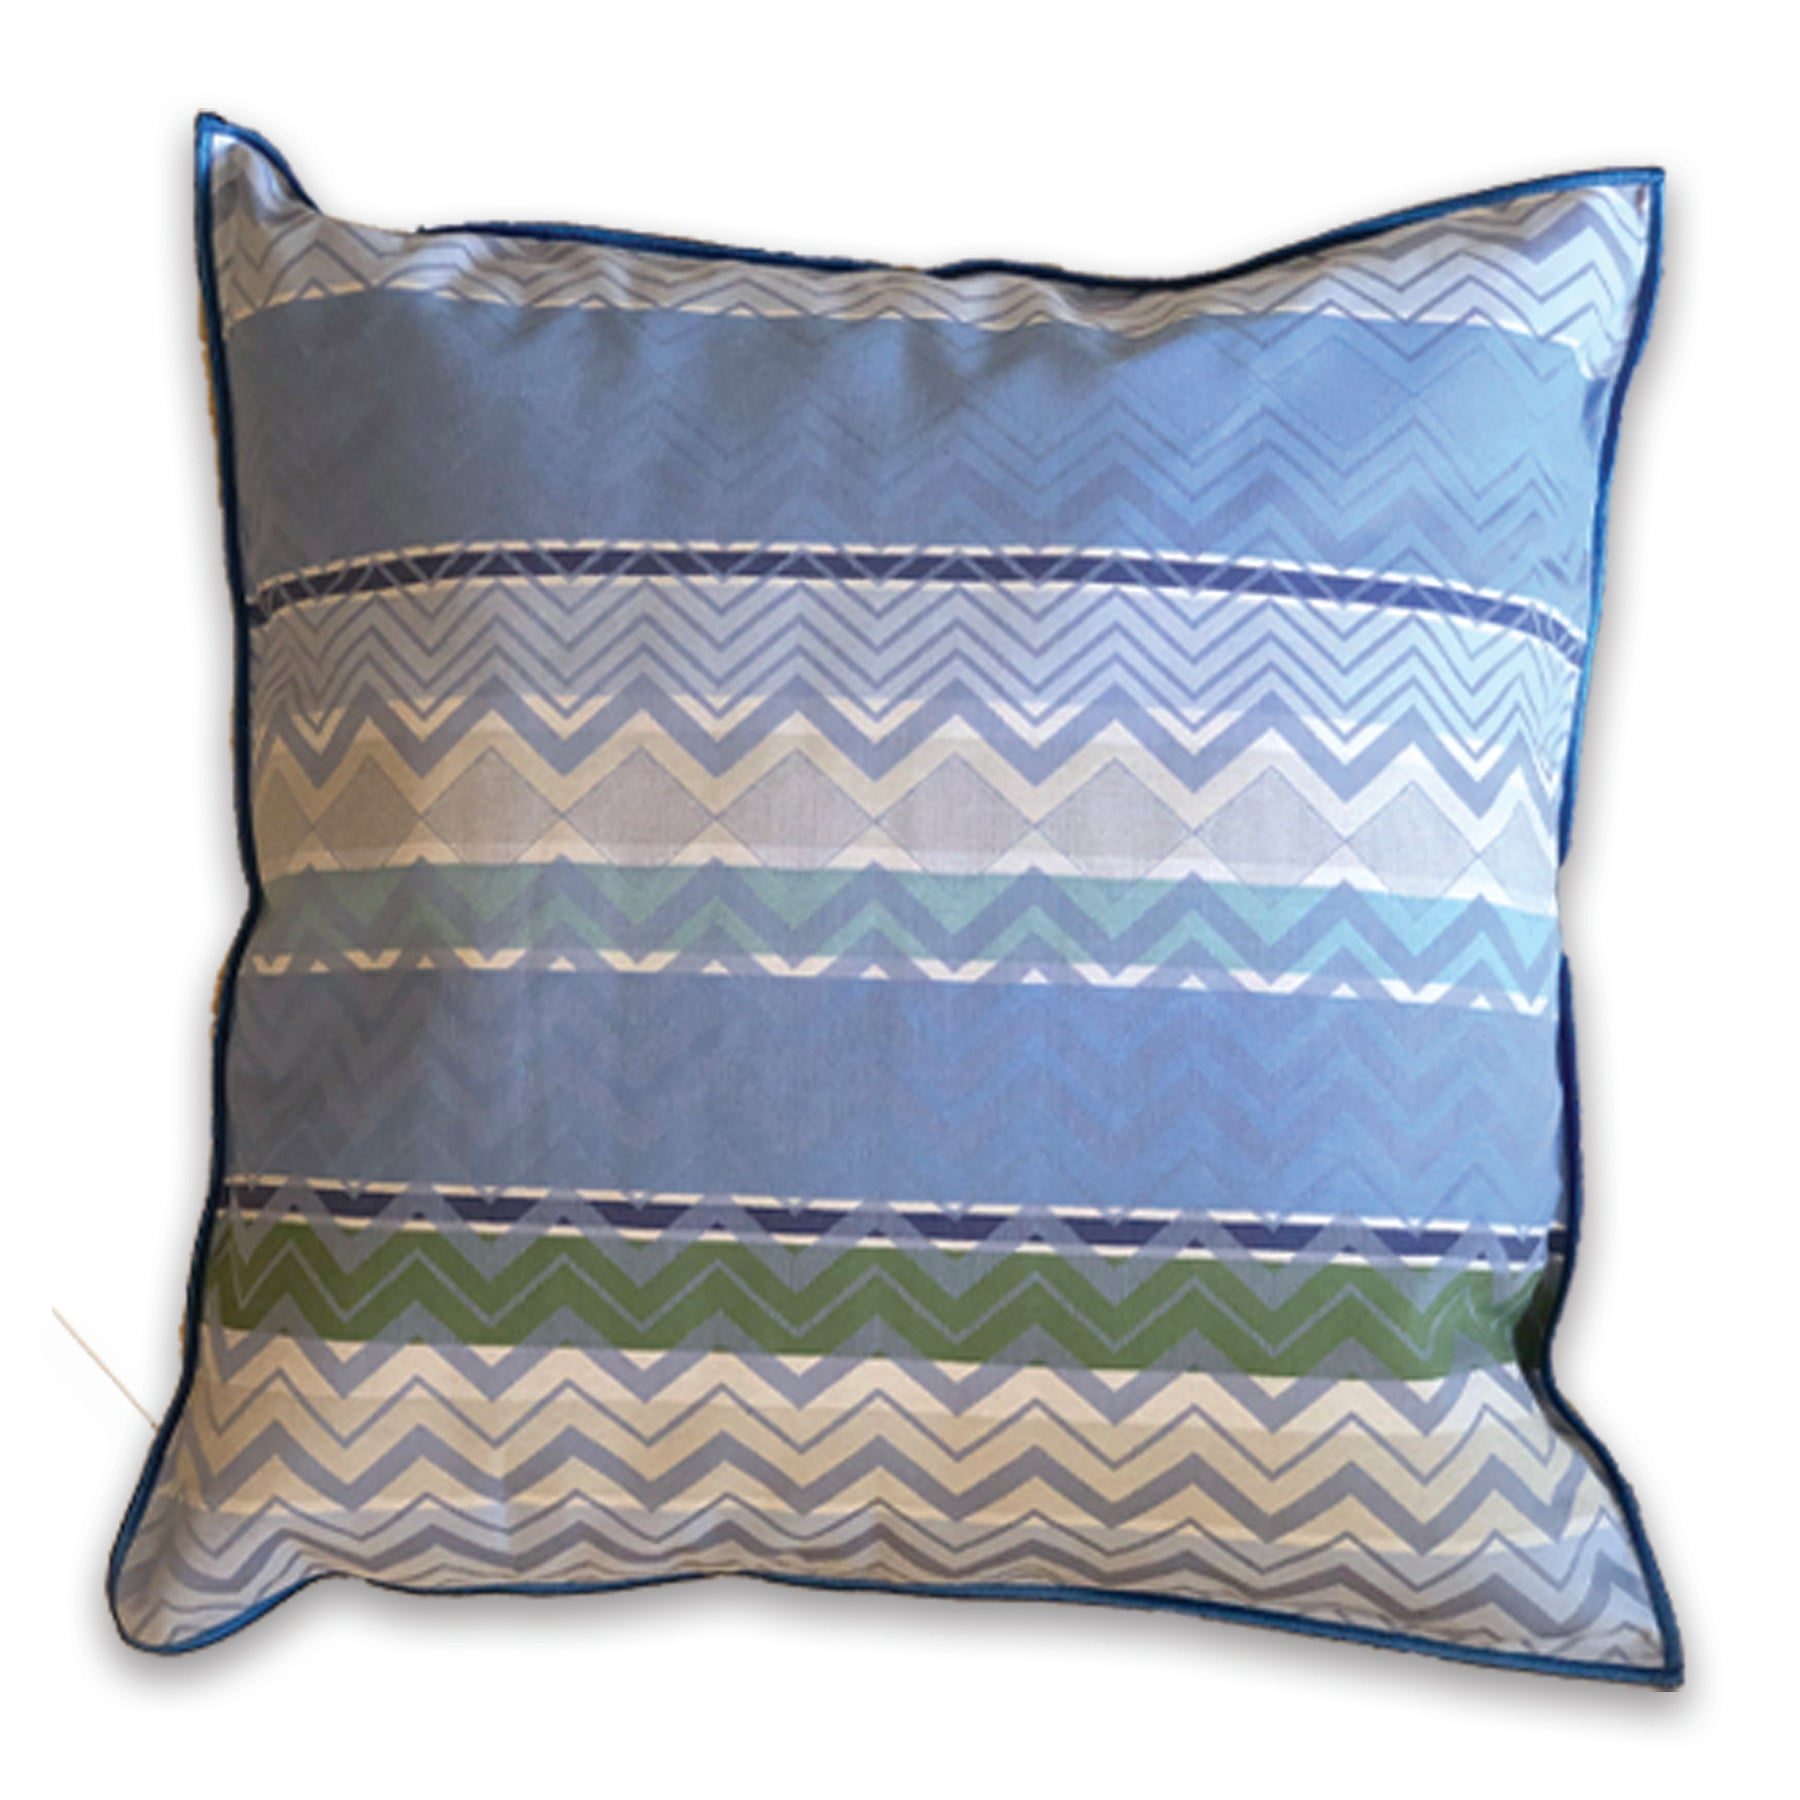 ColorRock Indoor/Outdoor 23 x 23 Pillow | Denim